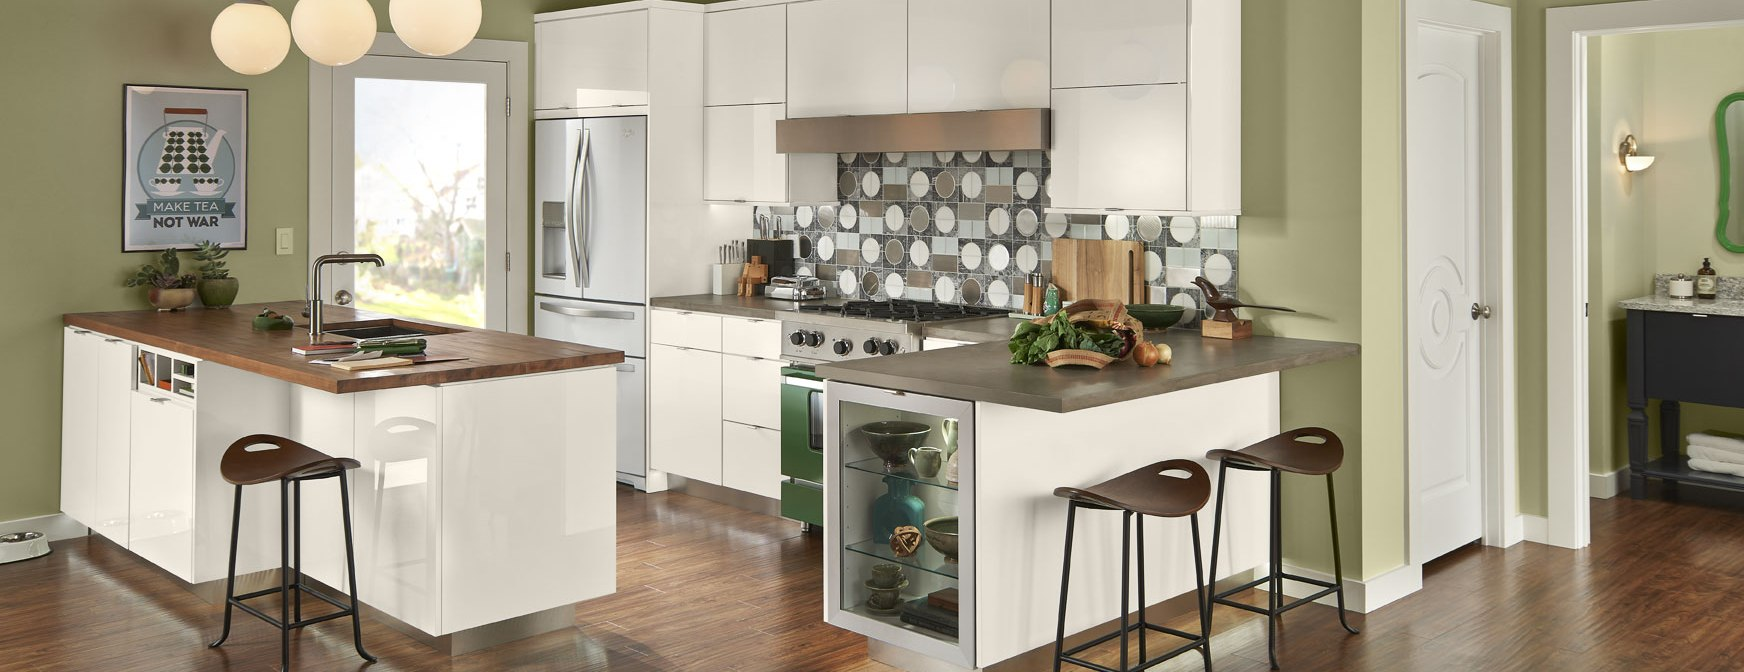 kraftmaid kitchen cabinets ideas islands repinly design